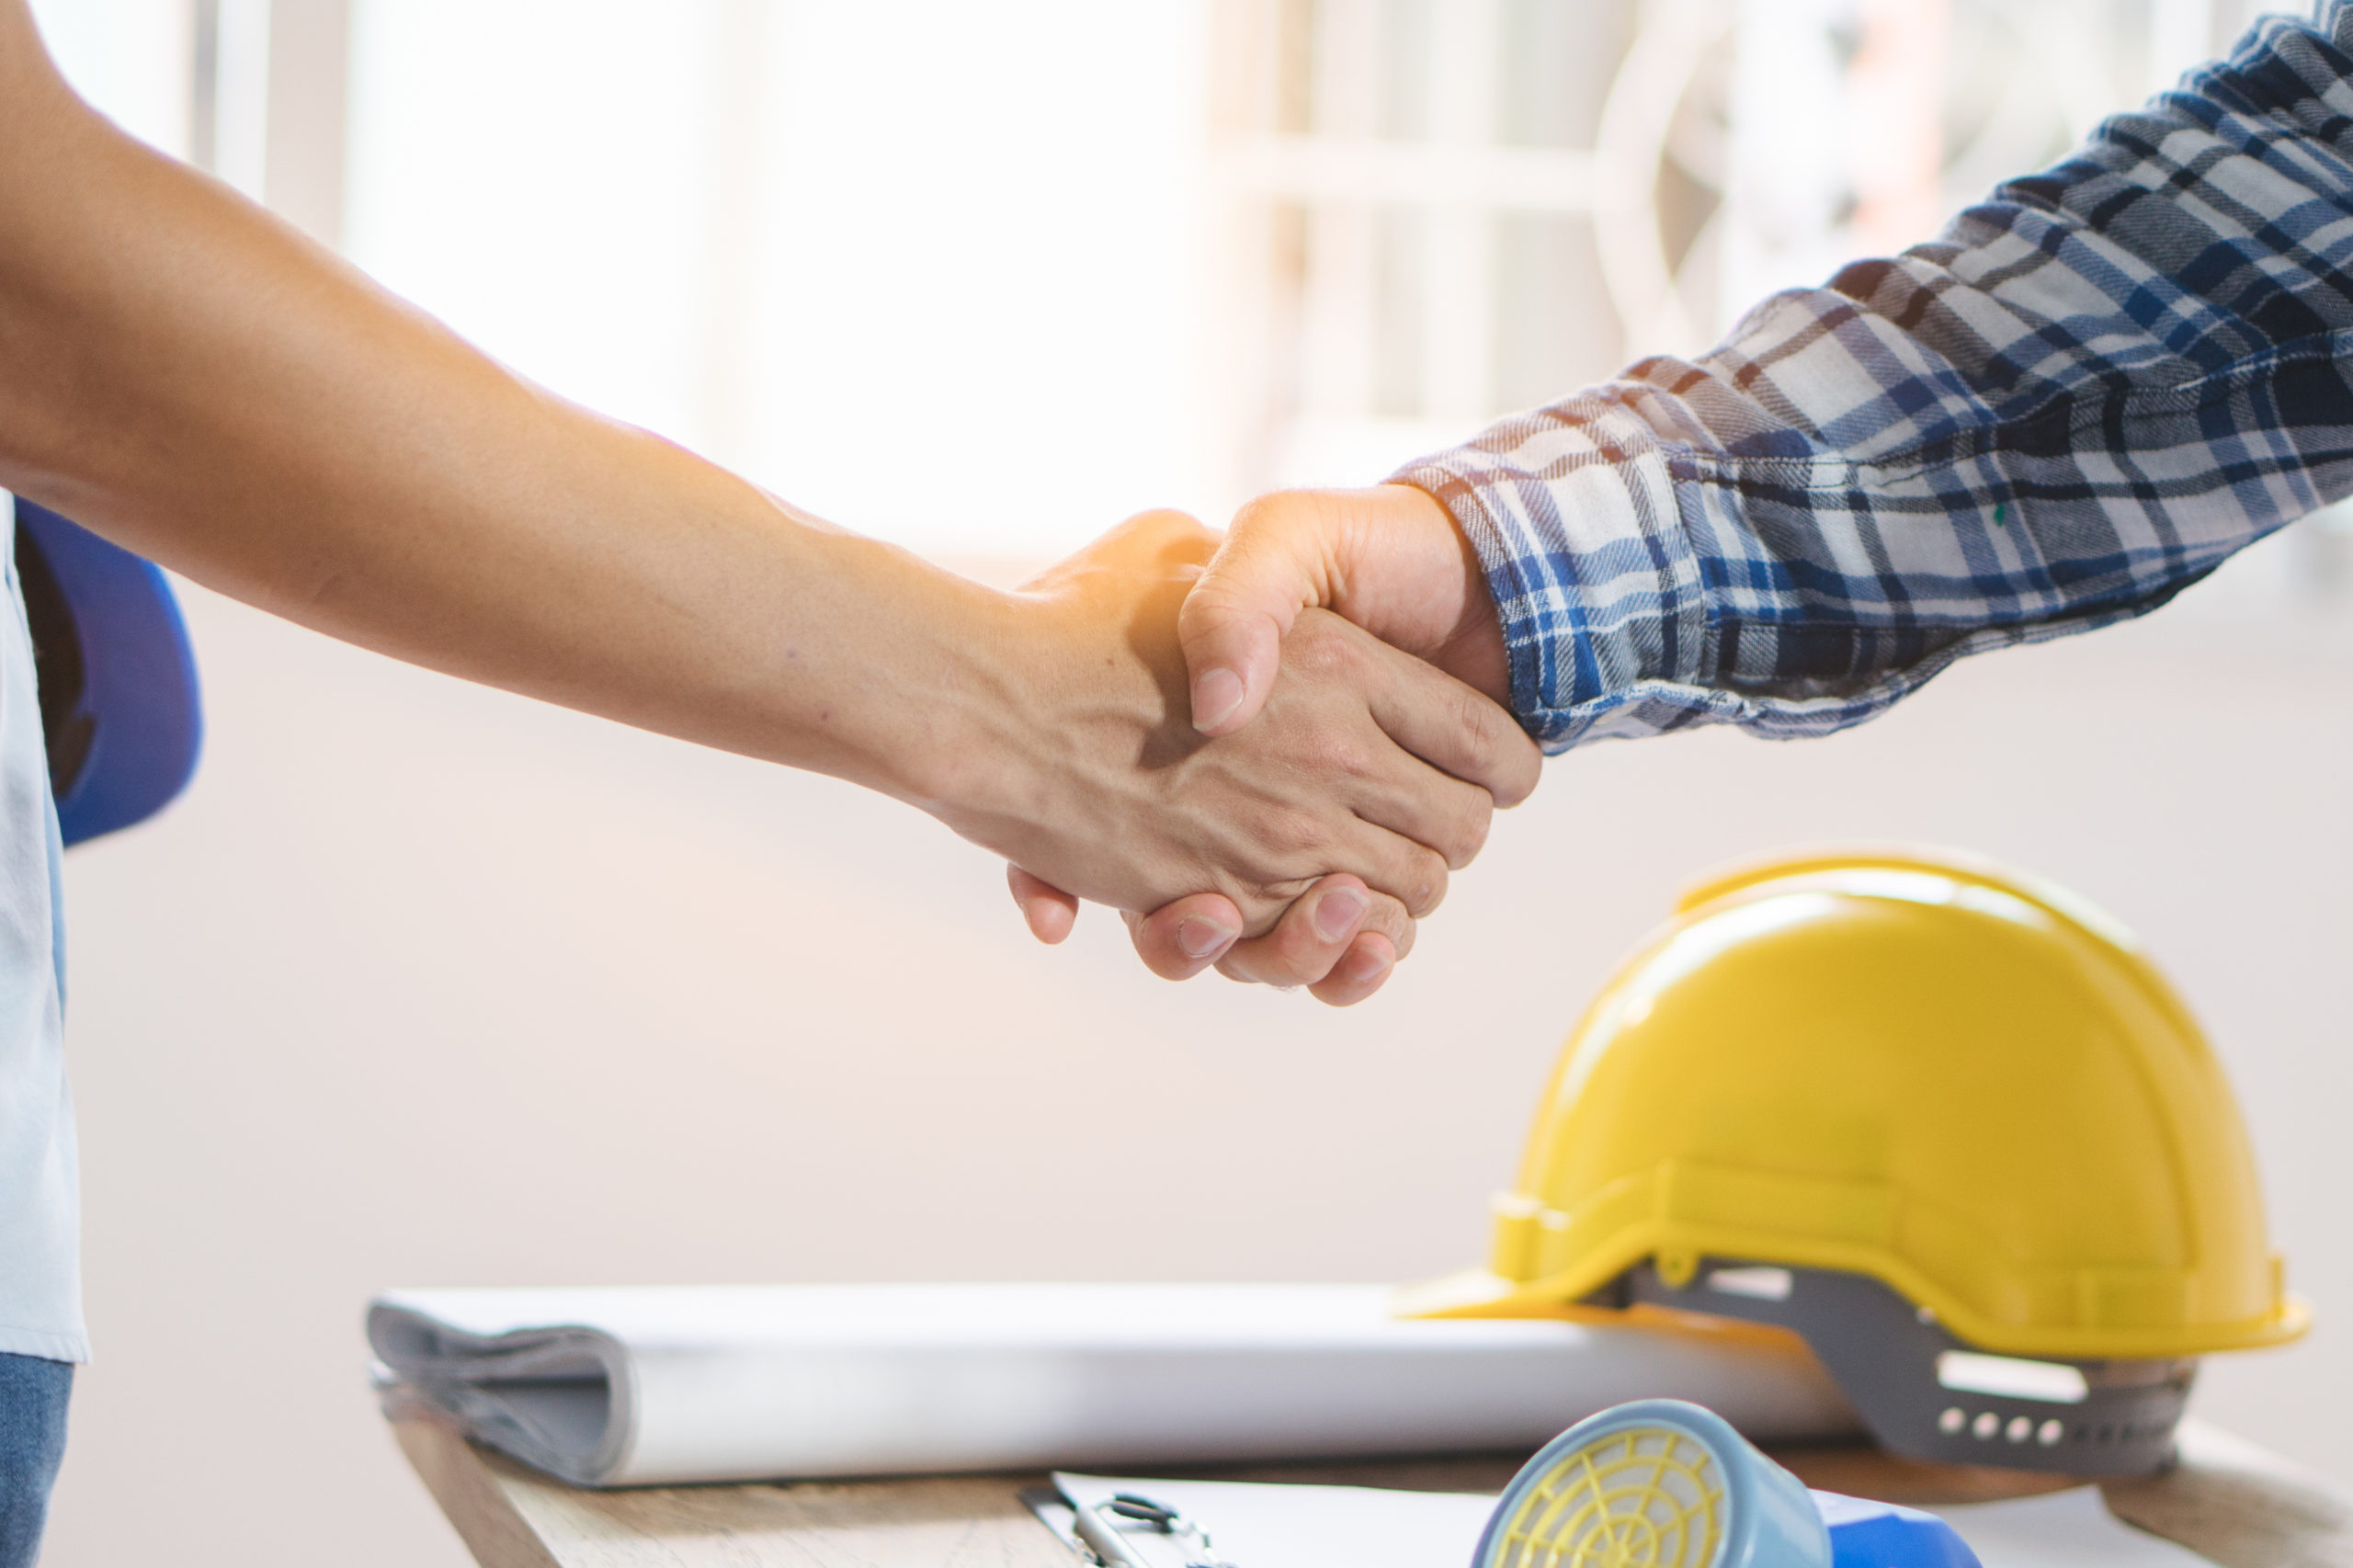 Two people shake hands as they agree to offer financing for home renovations and remodels. In the background is a contractor's hard hat and some folded blueprints.